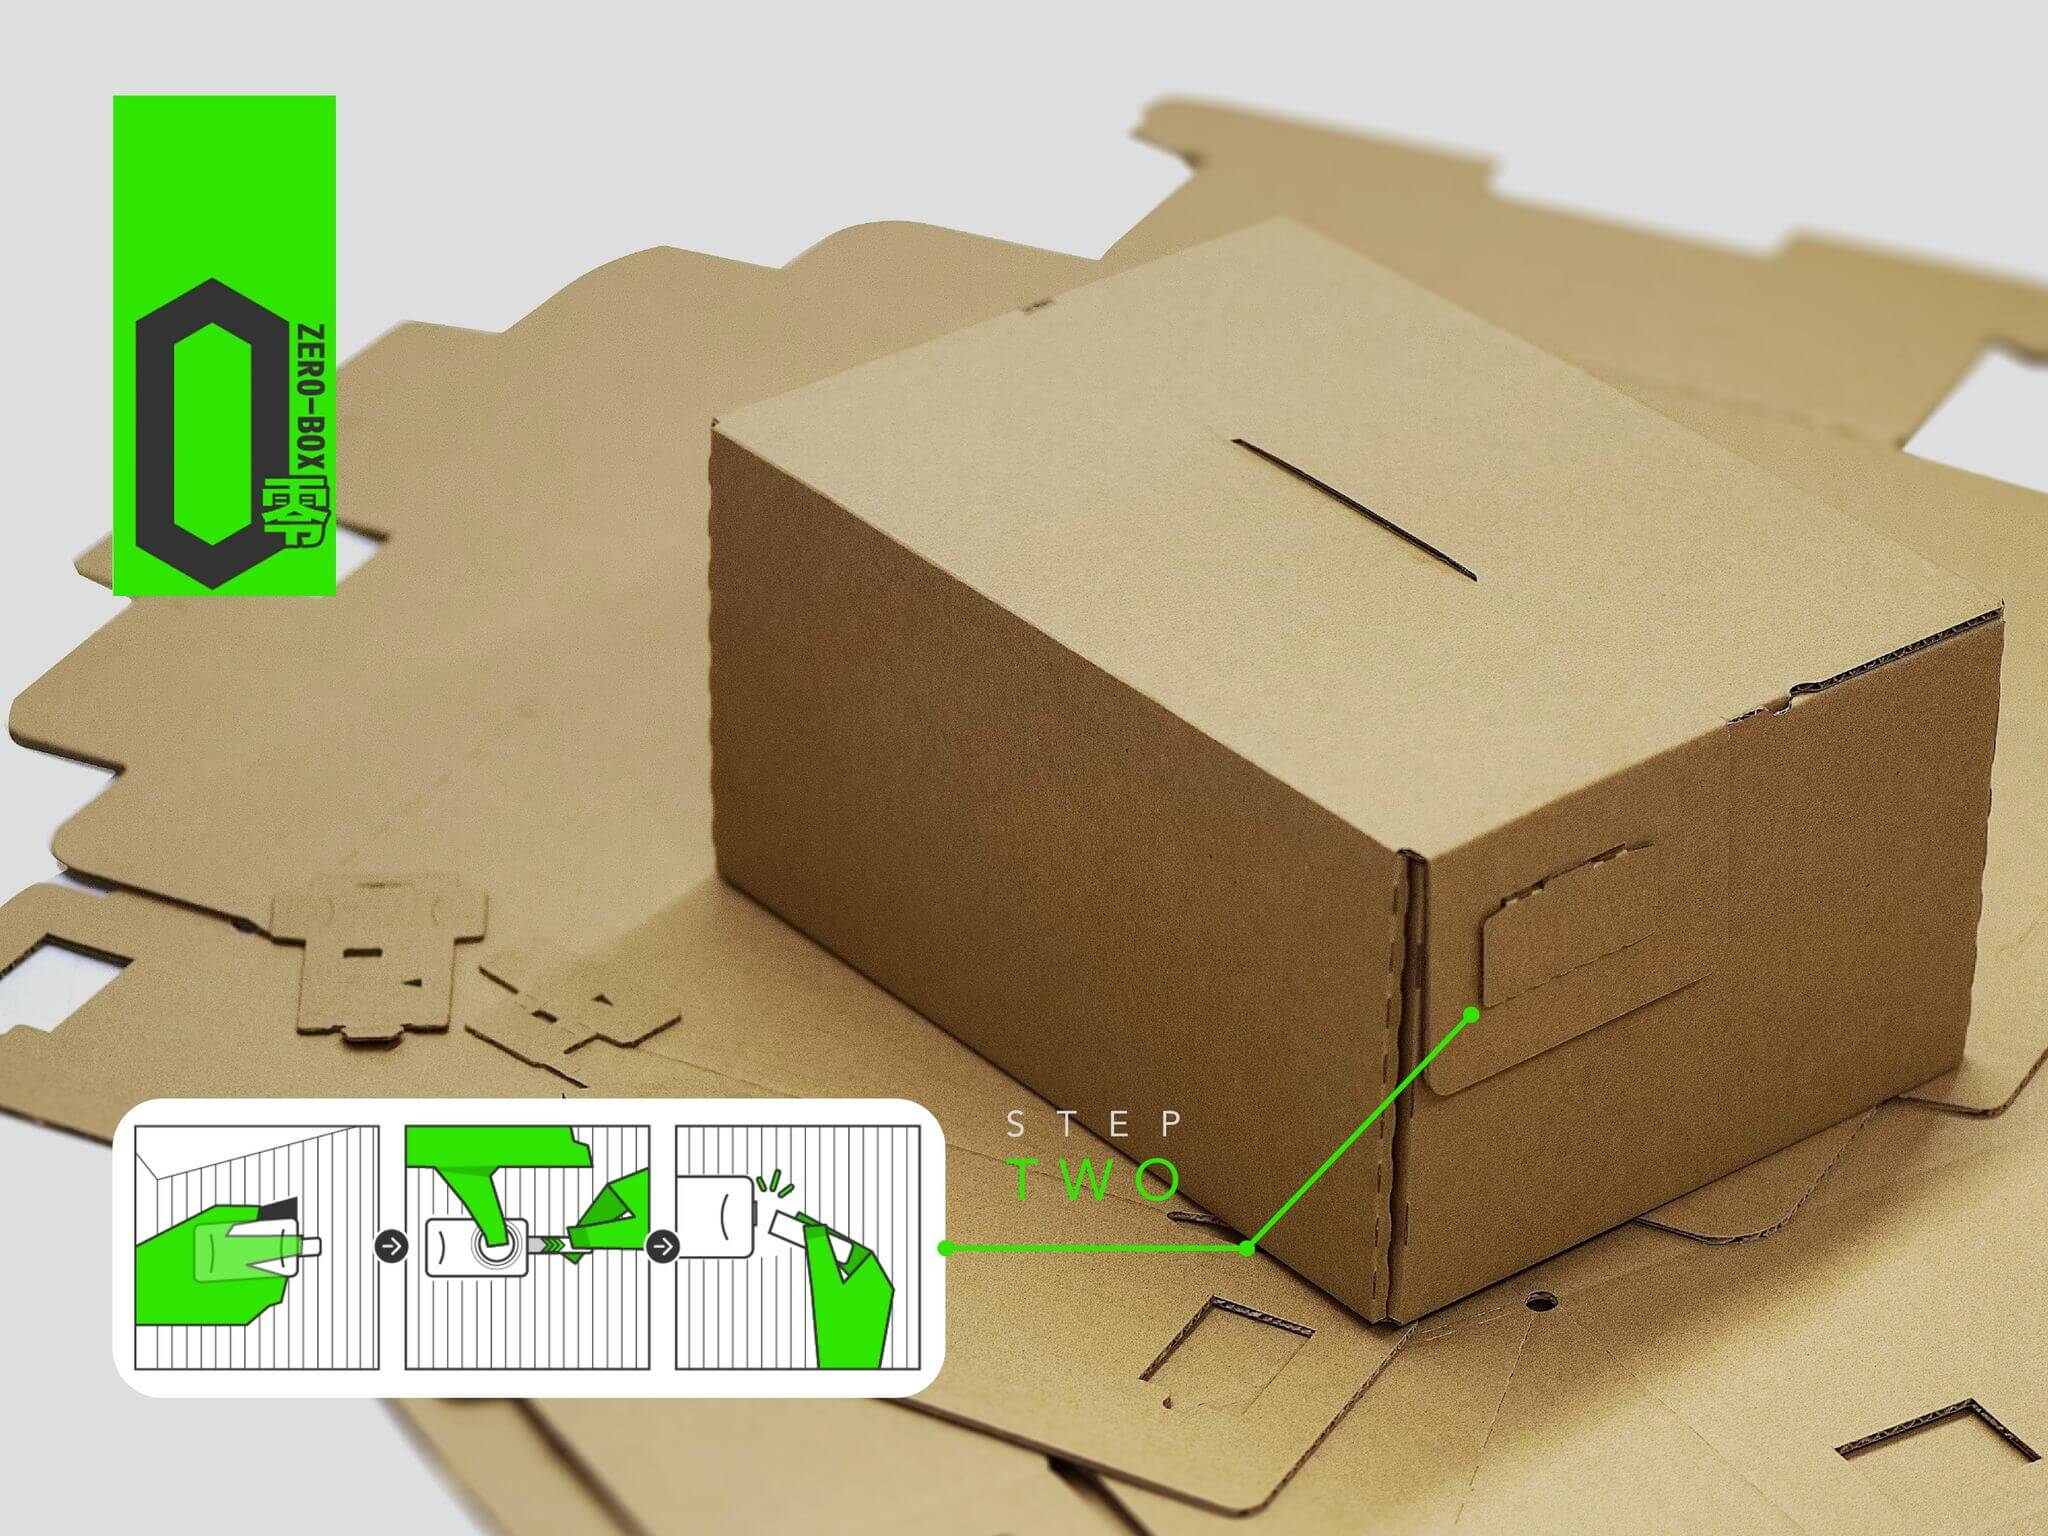 ZERO BOX - TAPE FREE SHIPPING BOX